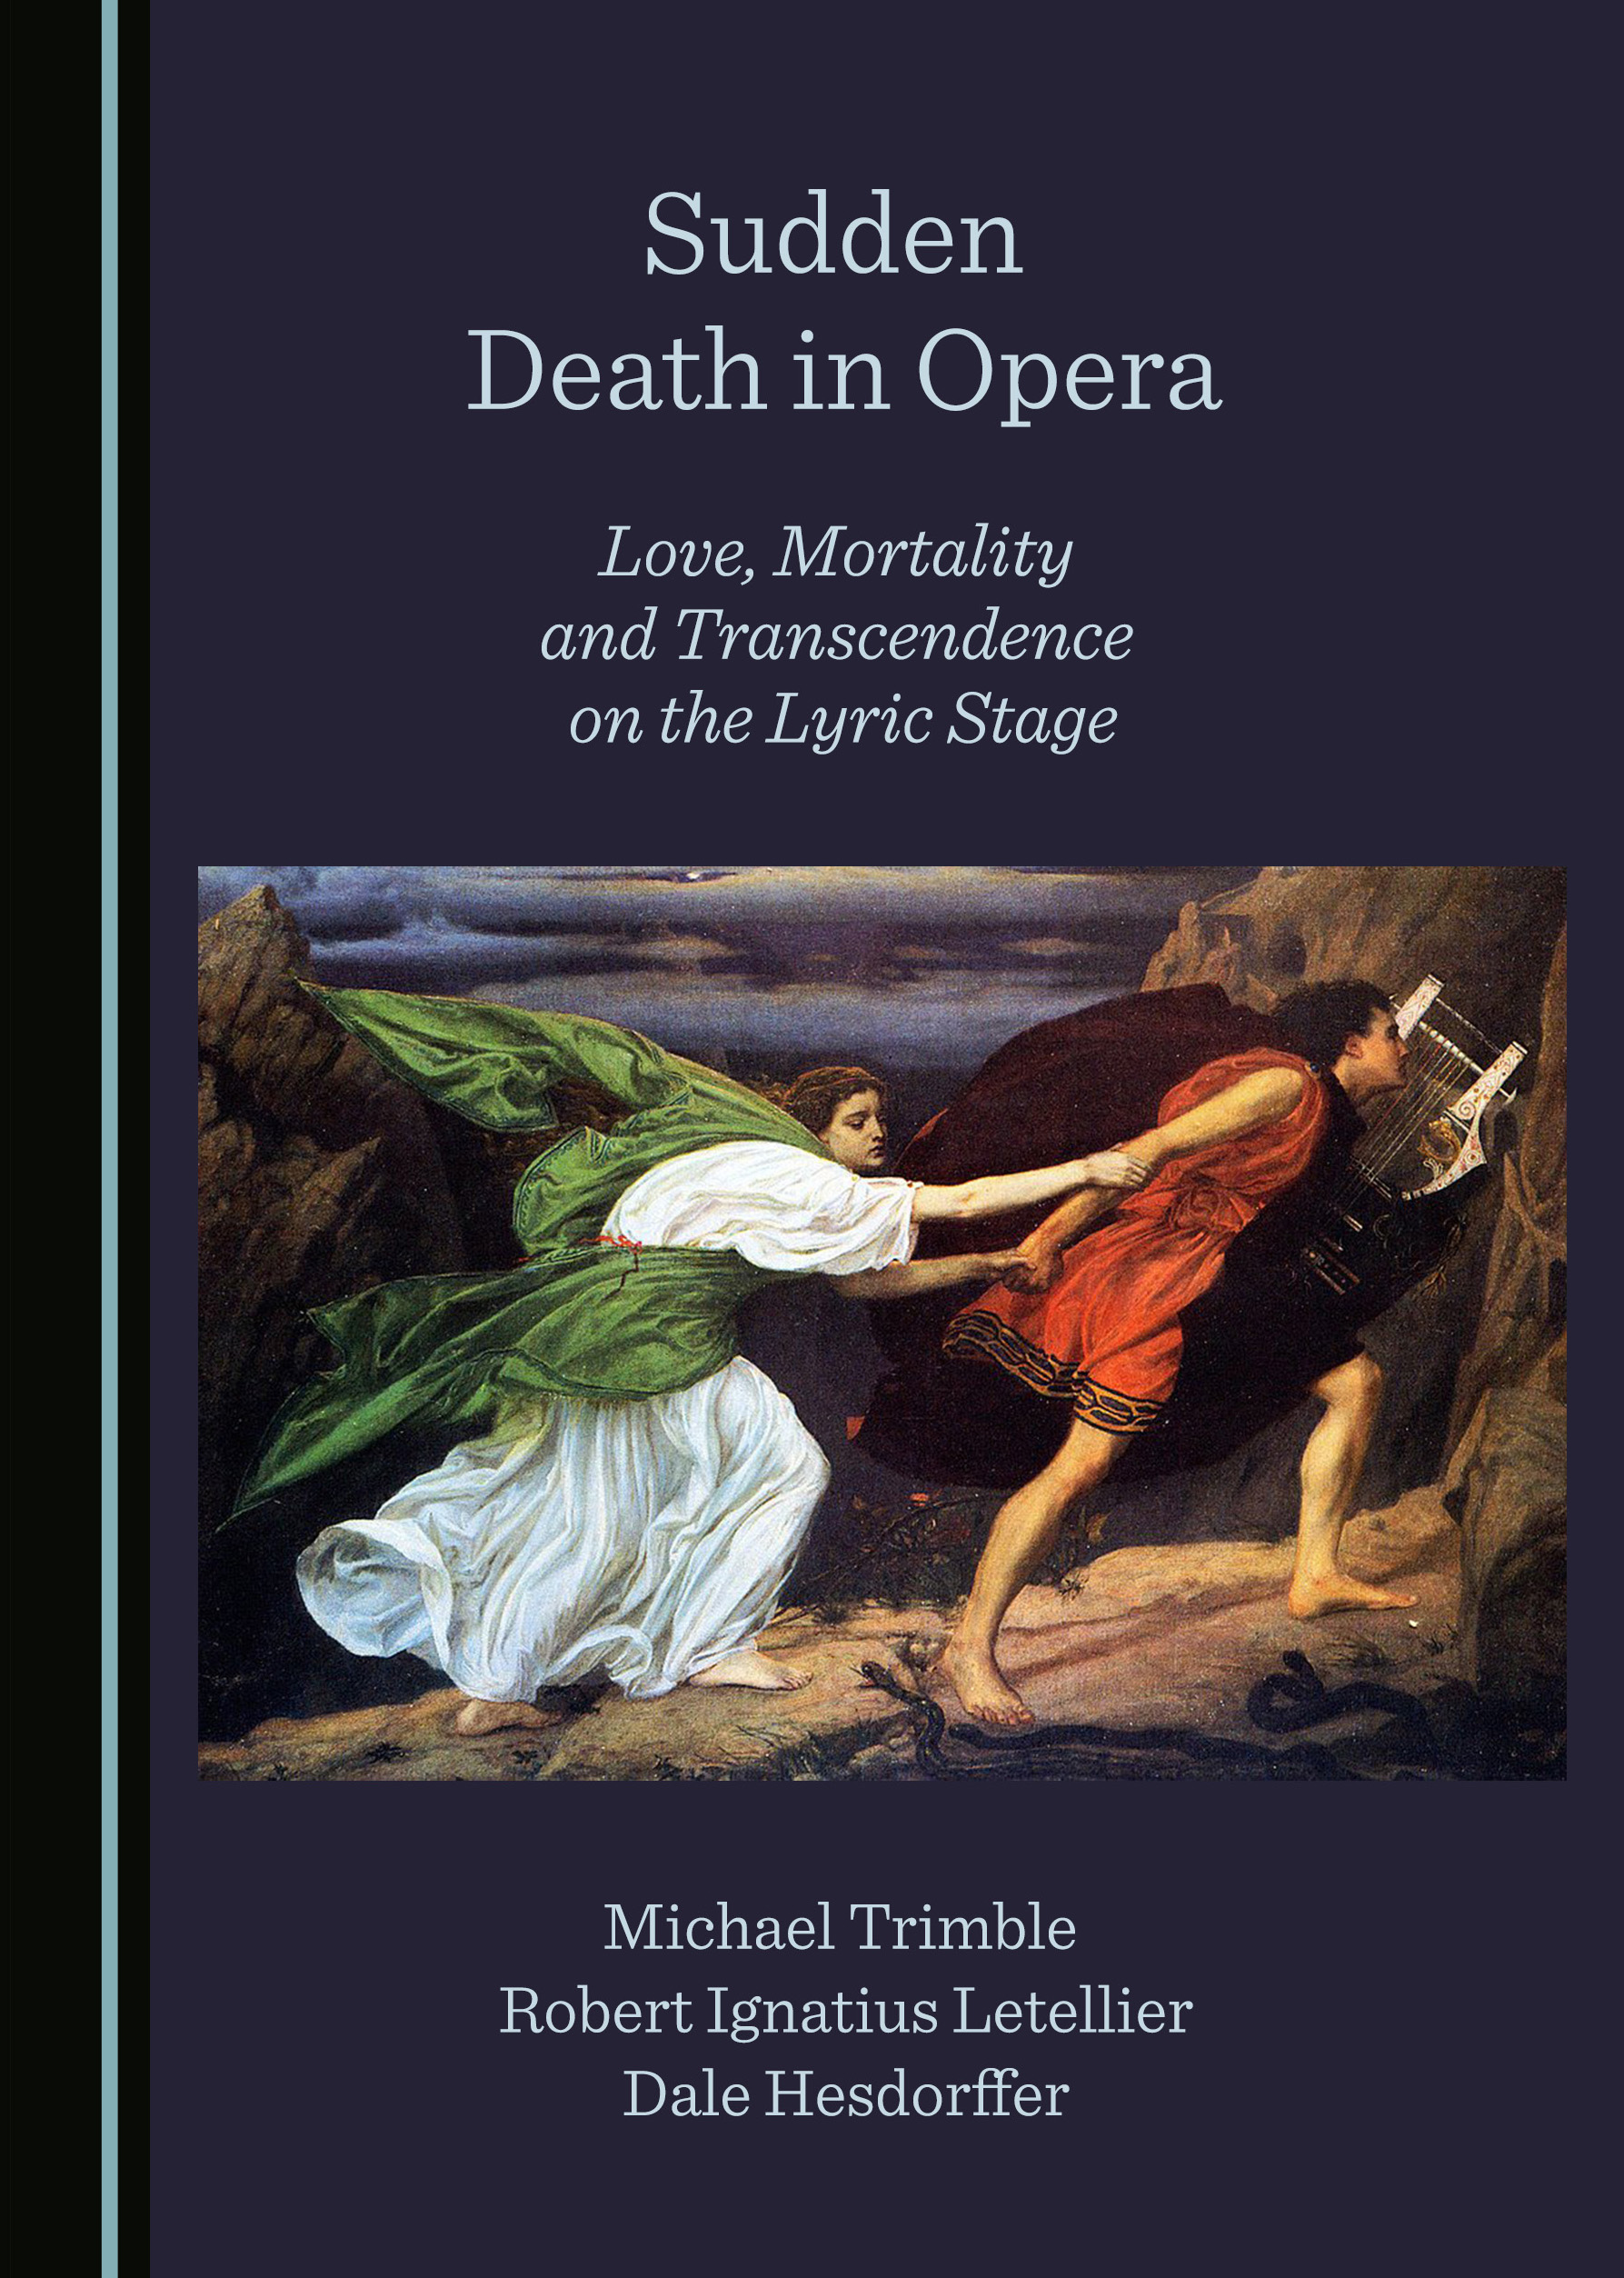 Sudden Death in Opera: Love, Mortality and Transcendence on the Lyric Stage